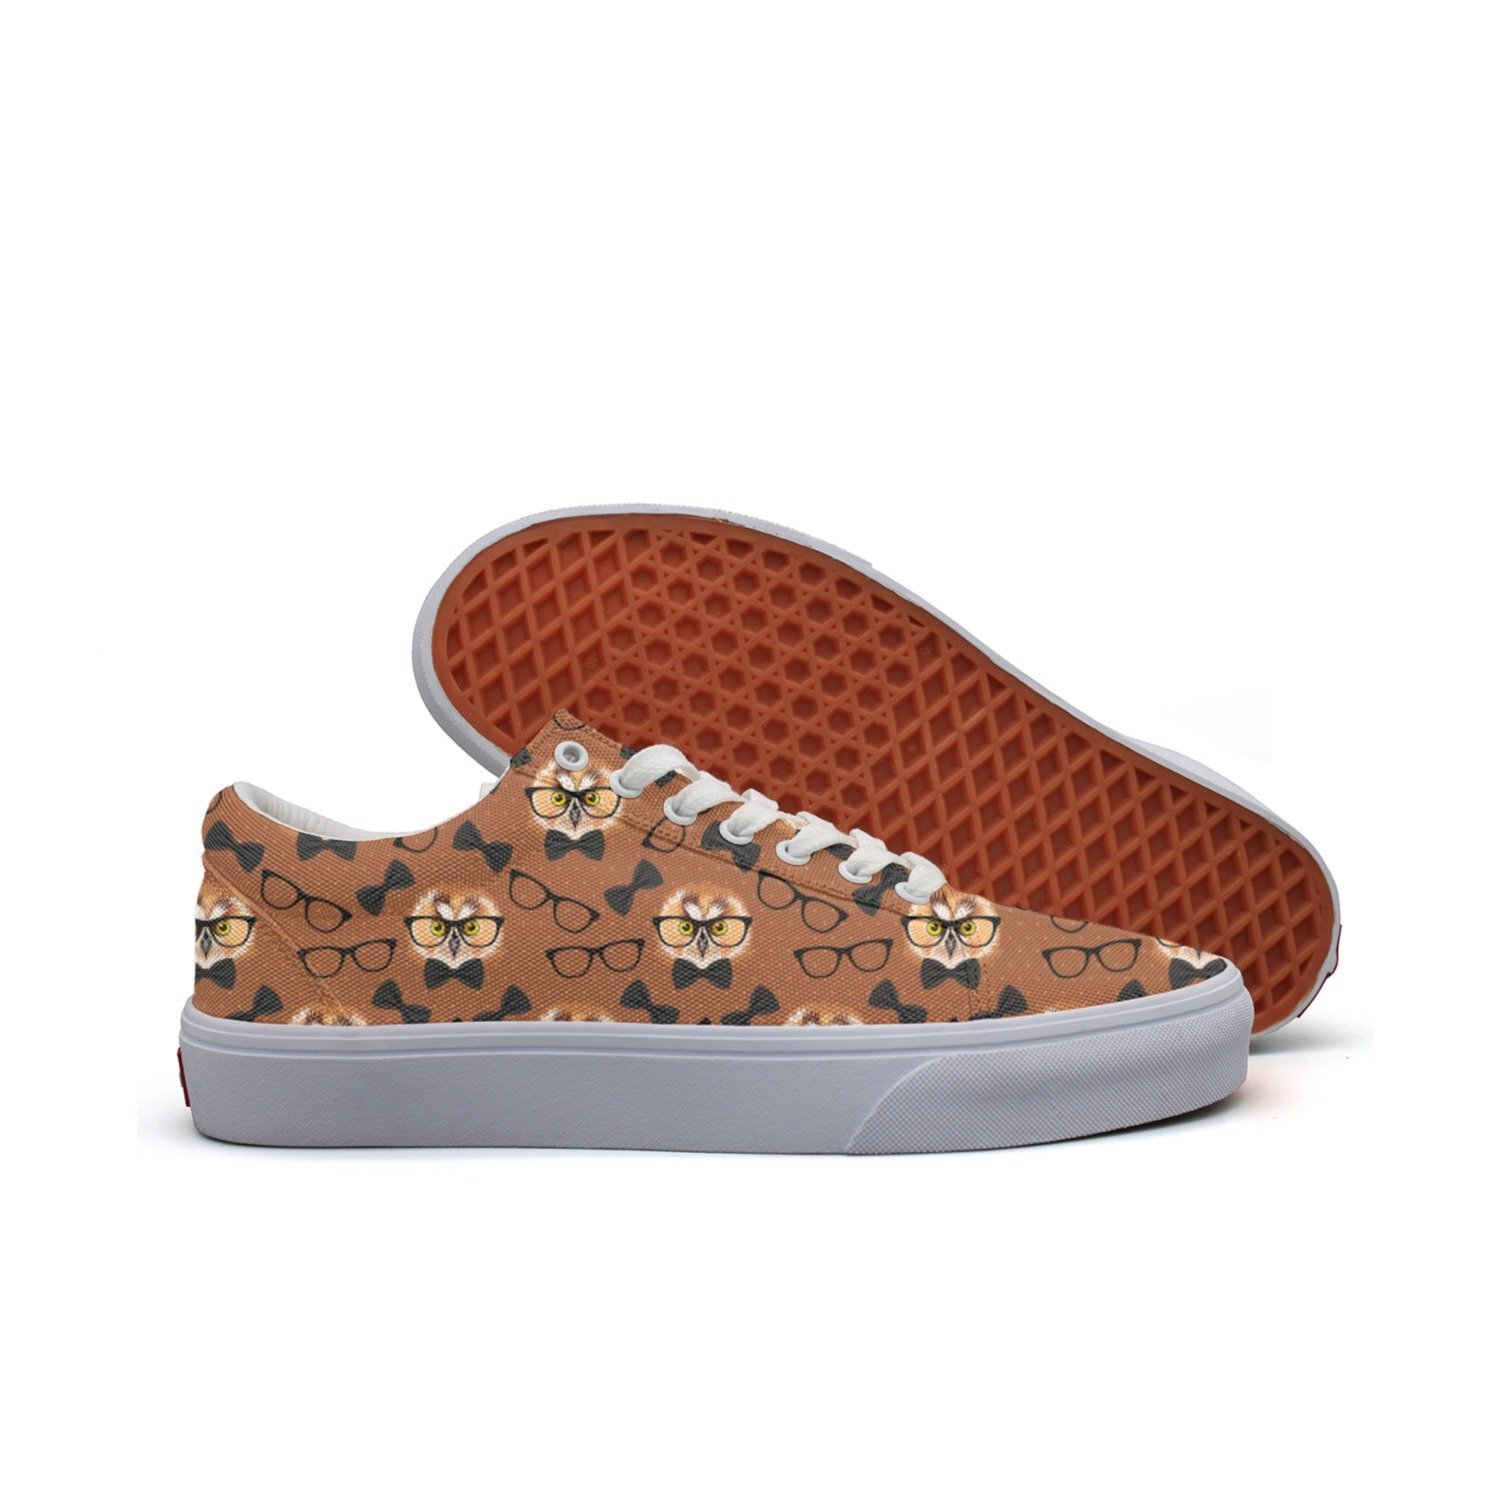 Owl With Glasses Women's Casual Sneakers Flat Slip On Nursing Gym